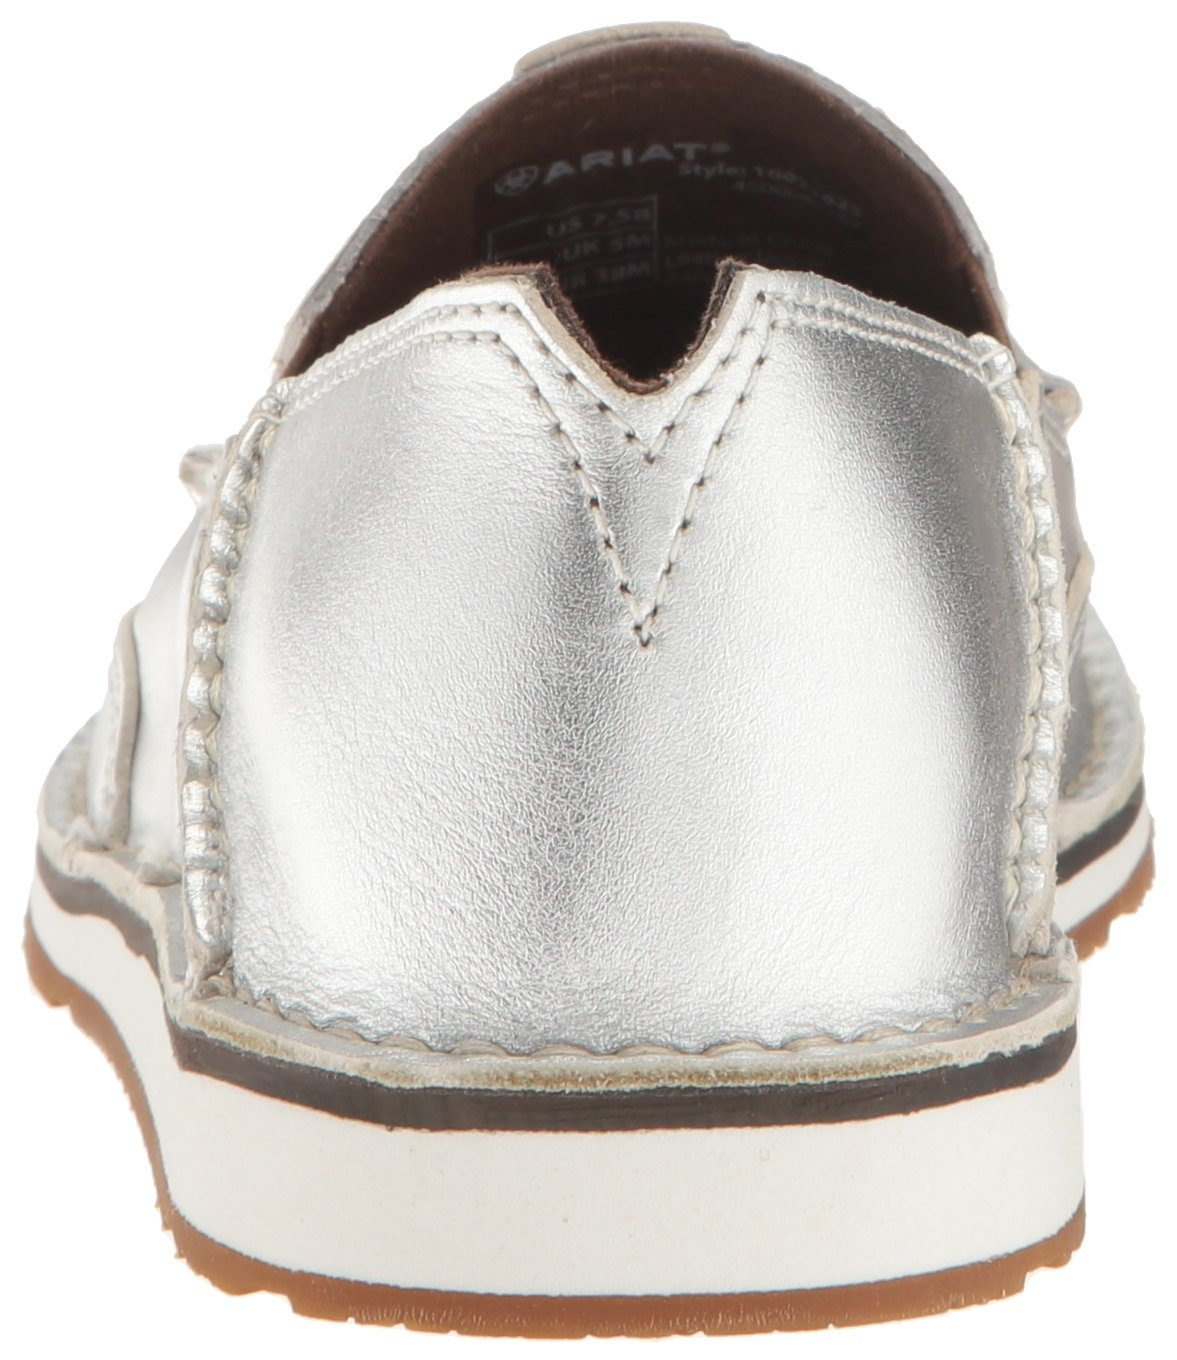 Ariat Women's Cruiser Slip-on US|Silver Shoe B01N9X75WM 8.5 B(M) US|Silver Slip-on Stream 9e4417